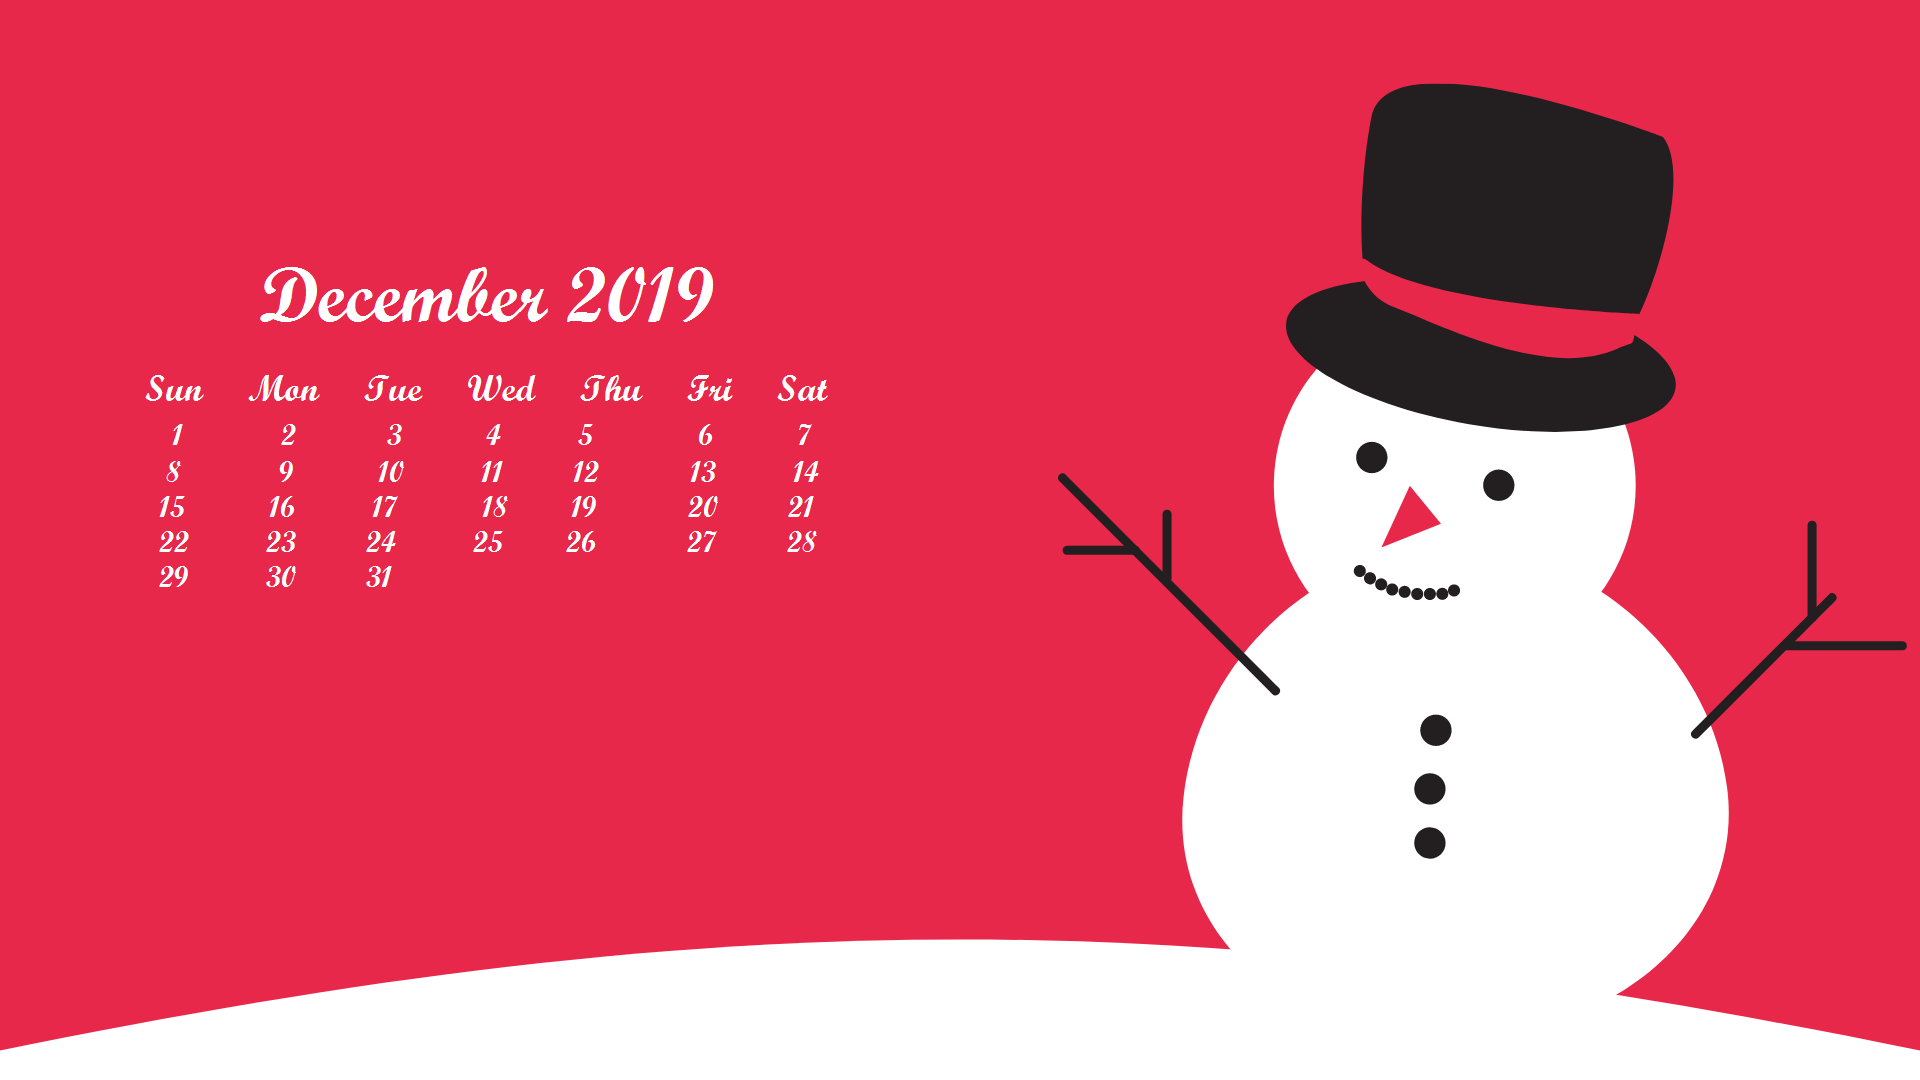 December 2019 Calendar Wallpaper Desktop December 2019 Desktop Wallpaper With Calendar | Desk Calendar in